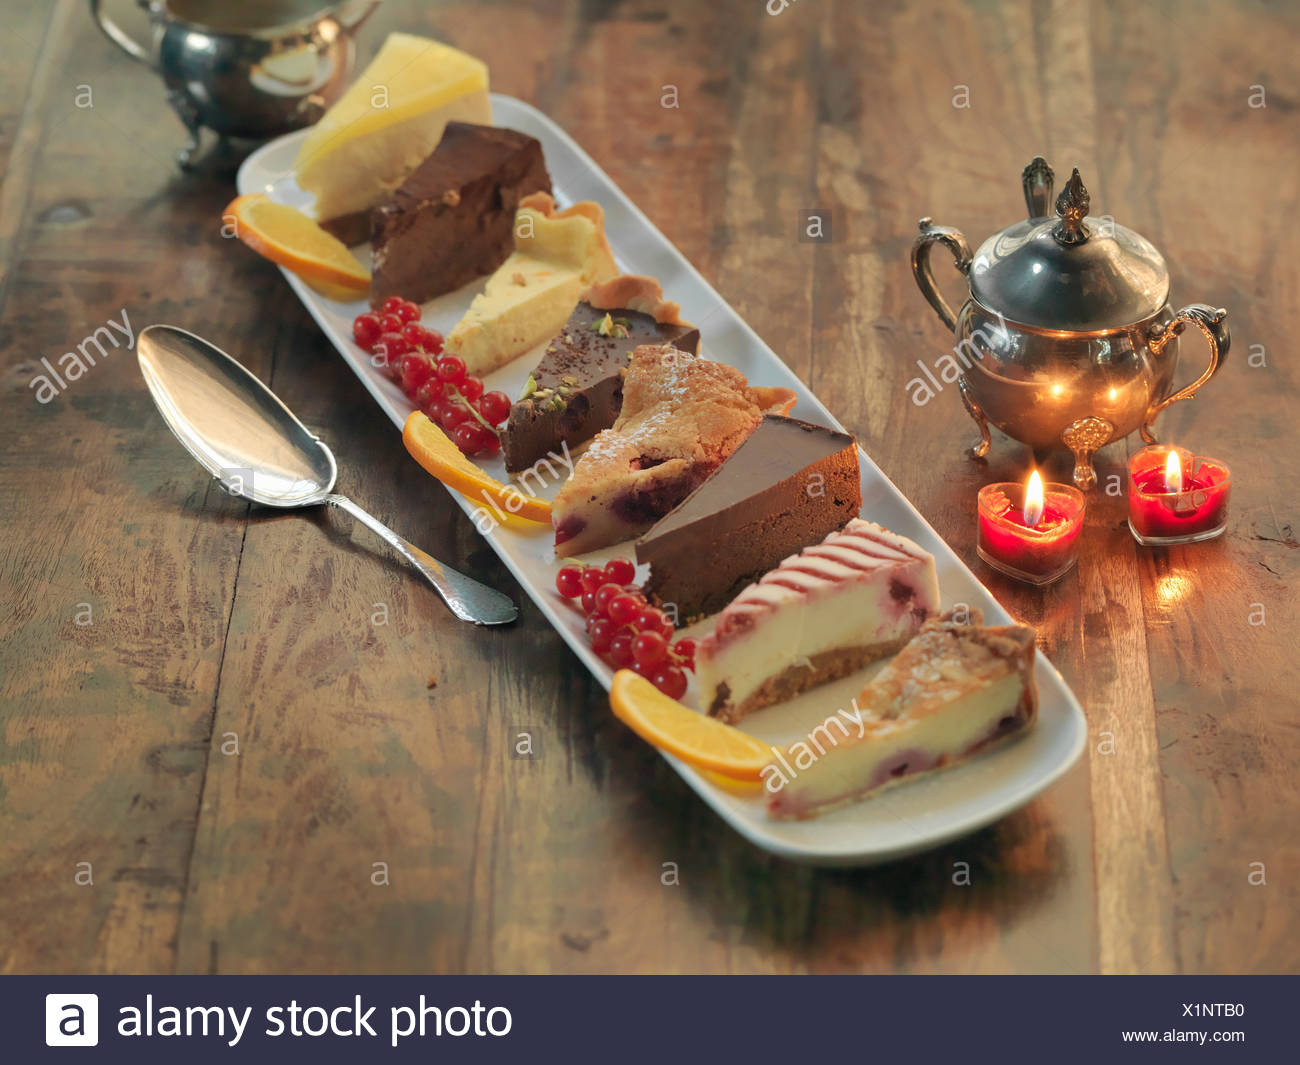 Mixed platter of cakes and tarts amongst festive decorations - Stock Image